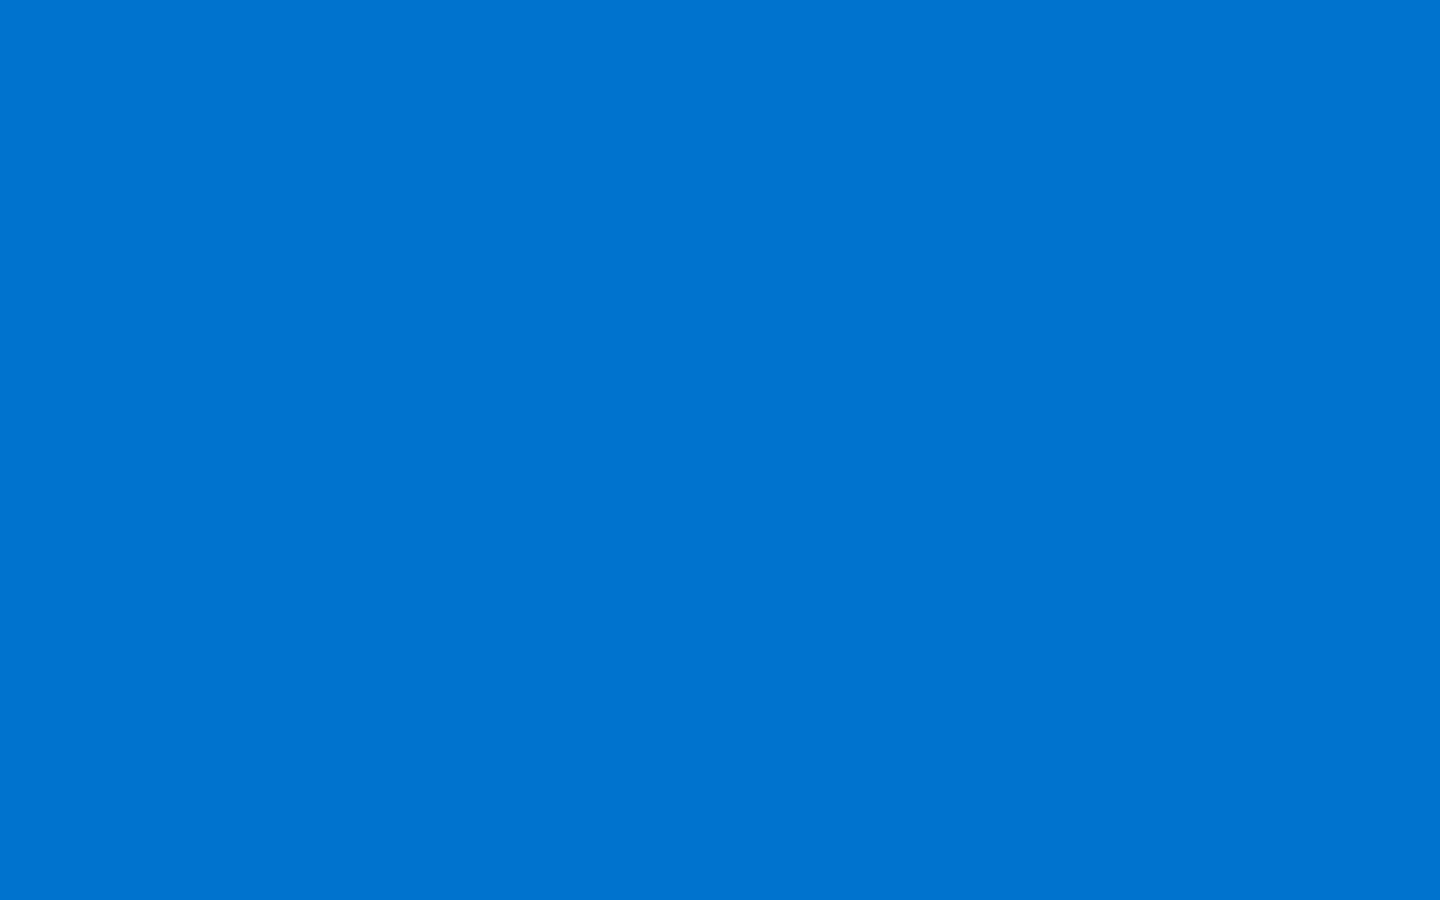 1440x900 True Blue Solid Color Background